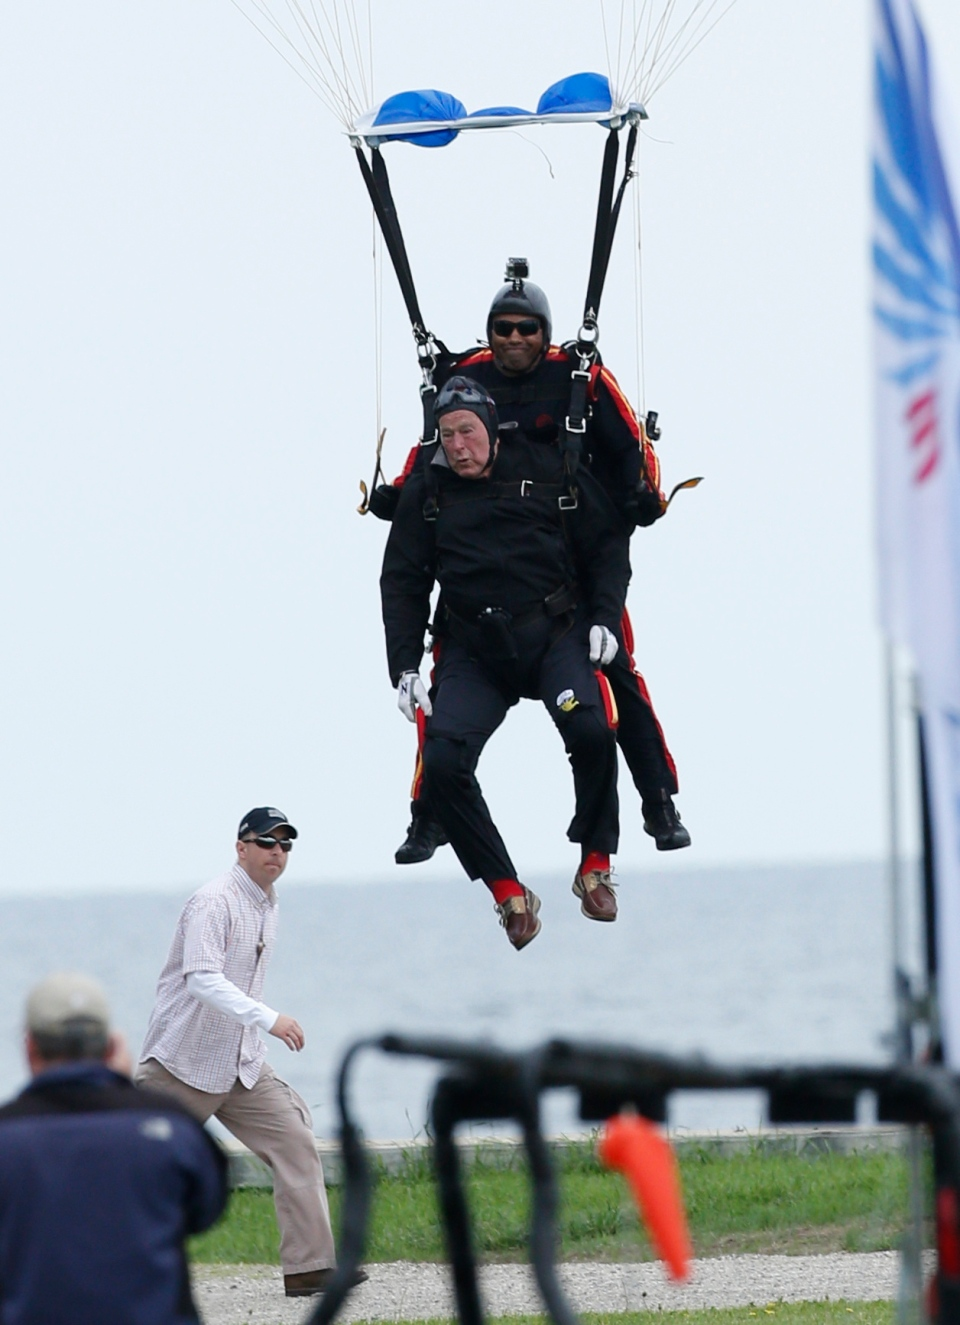 Former President George H.W. Bush, strapped to Sgt. 1st Class Mike Elliott, prepares to land while celebrating Bush's 90th birthday in Kennebunkport, Maine, Thursday, June 12, 2014. (AP Photo/Robert F. Bukaty)